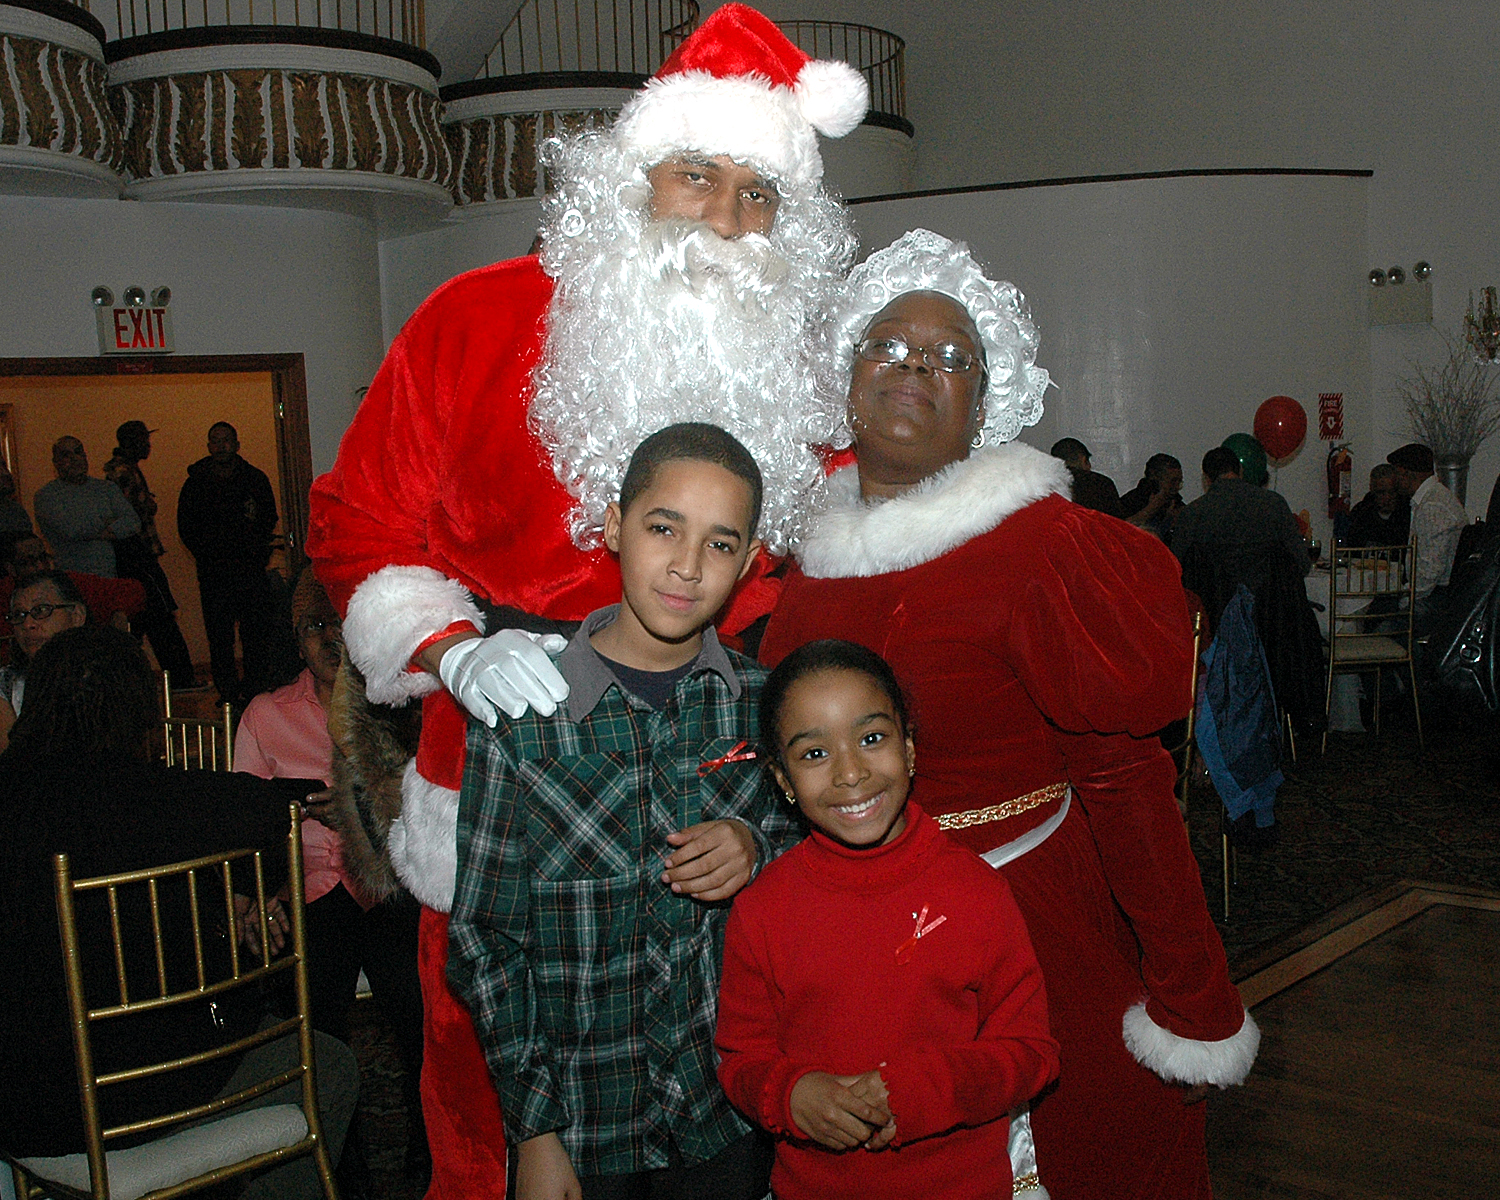 Attendees posing with Santa and Mrs. Claus